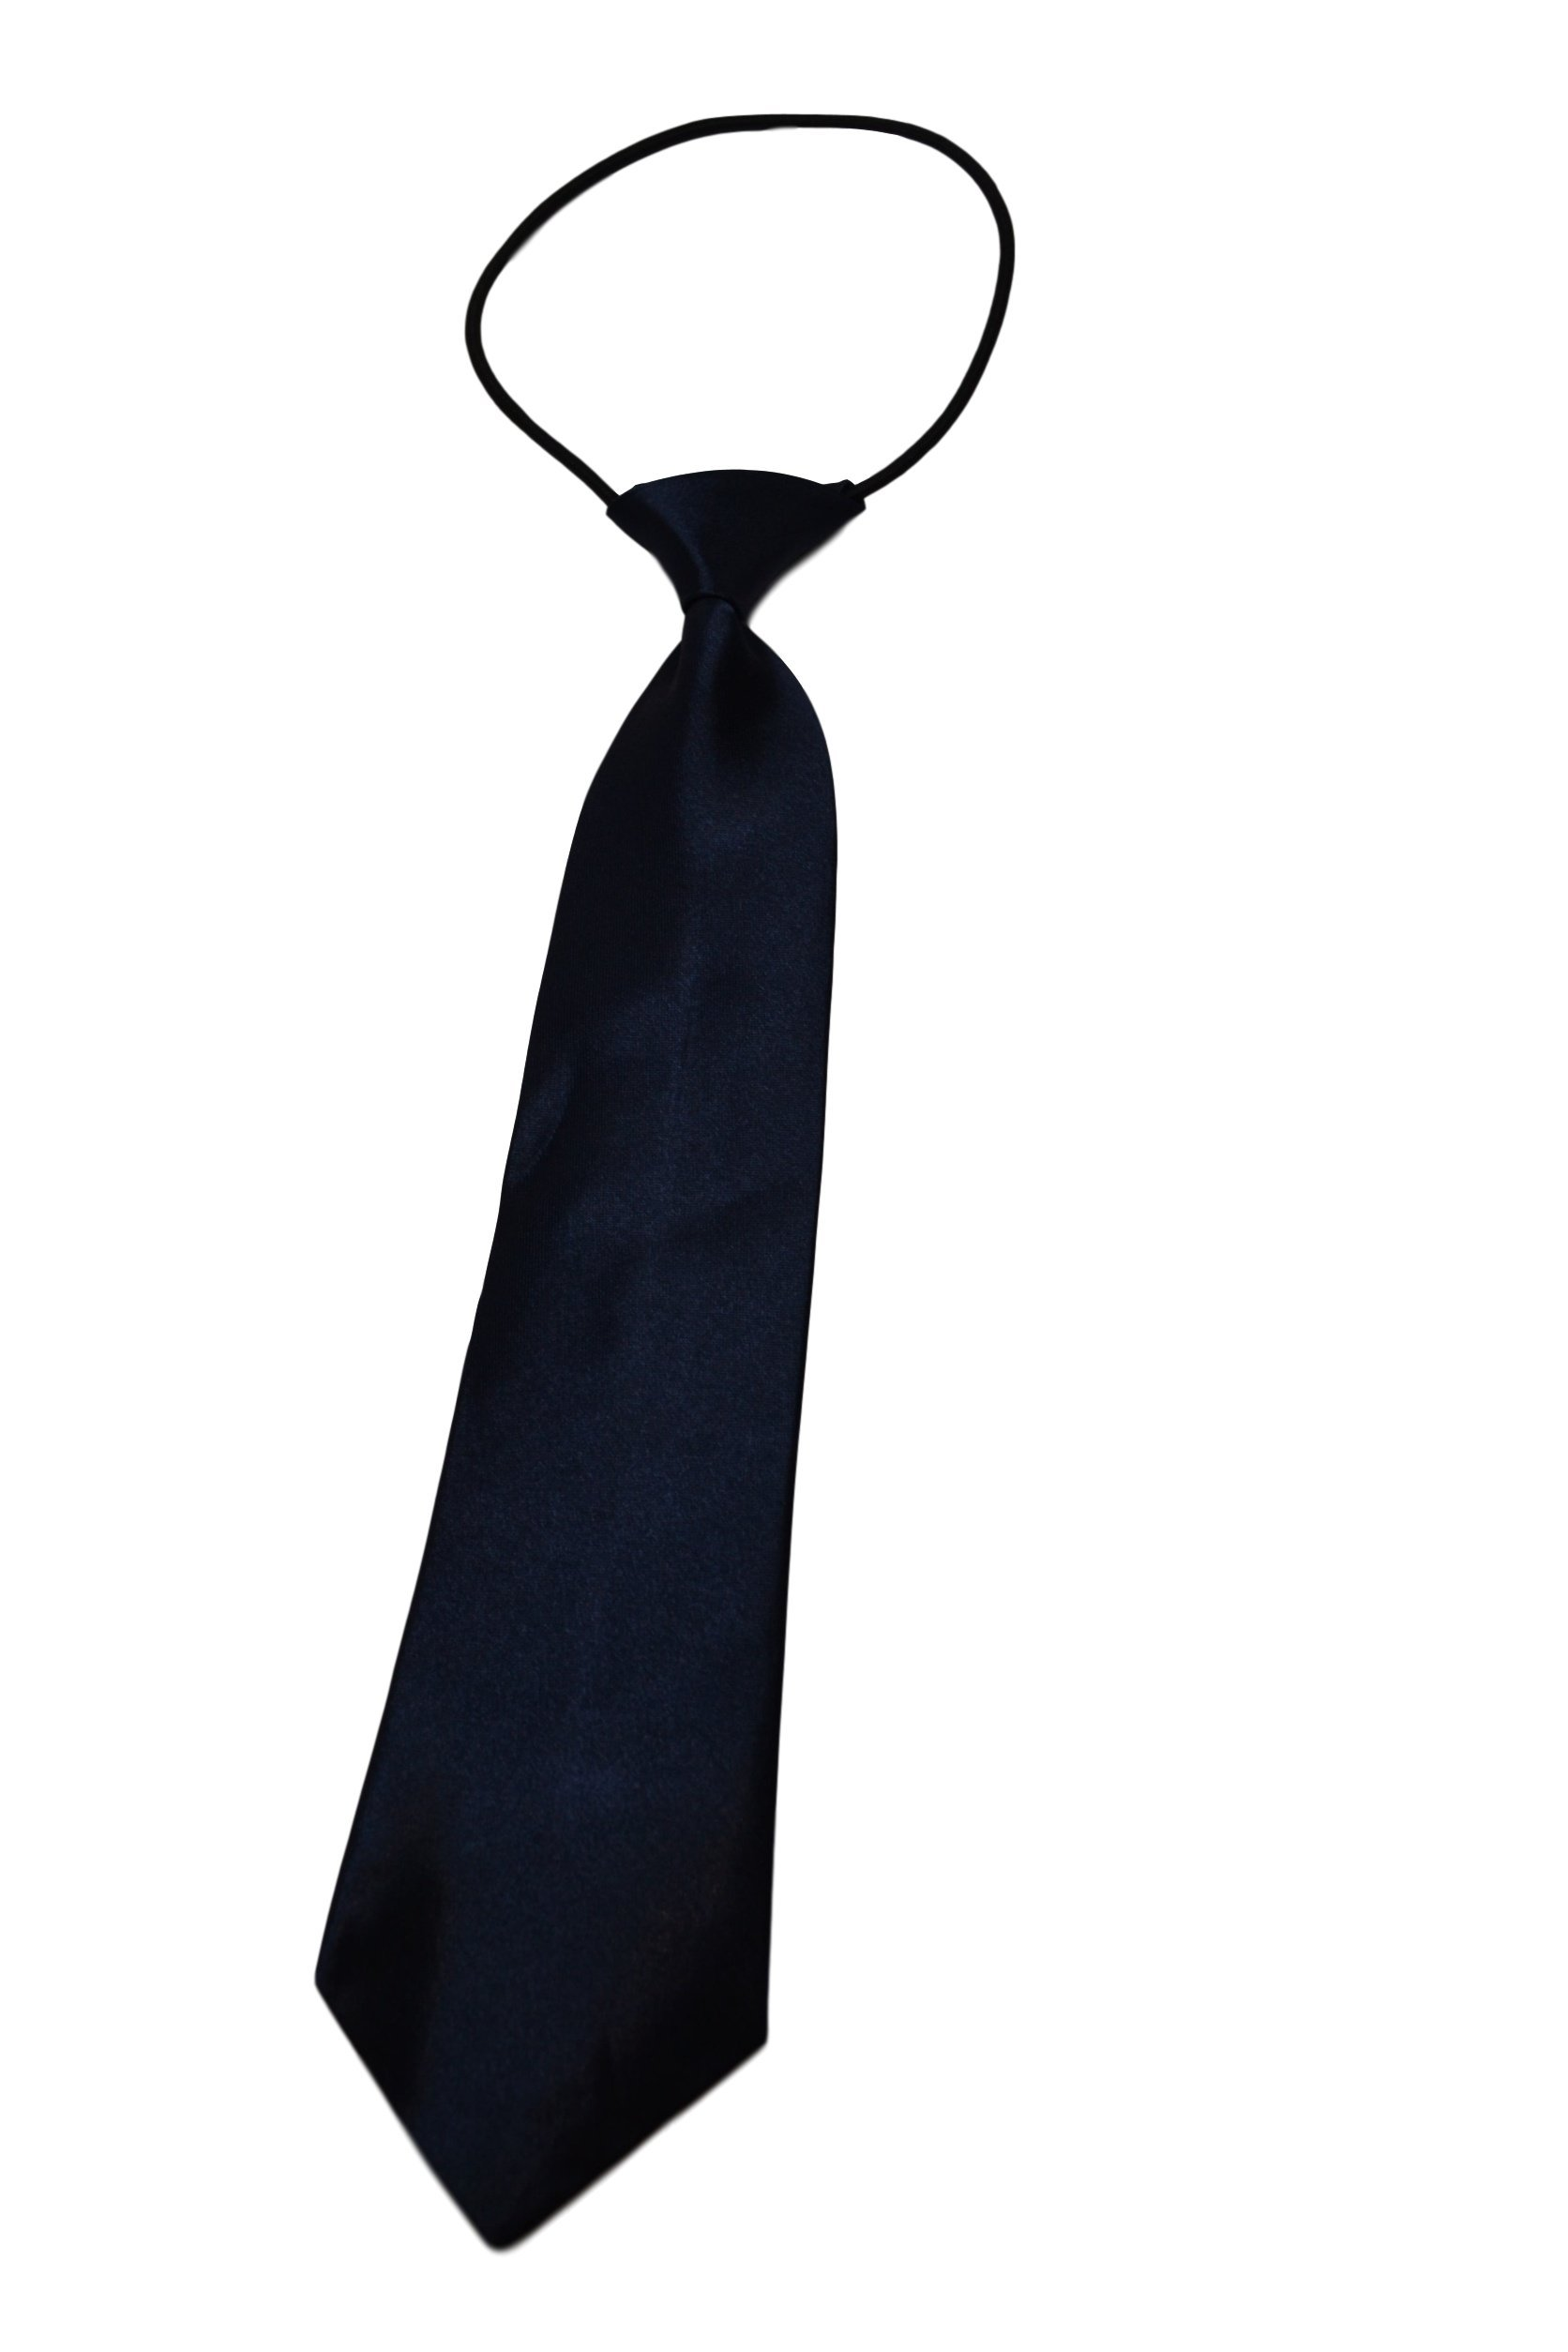 Roo Threads Boys 12 inch Elastic Necktie, Navy Blue